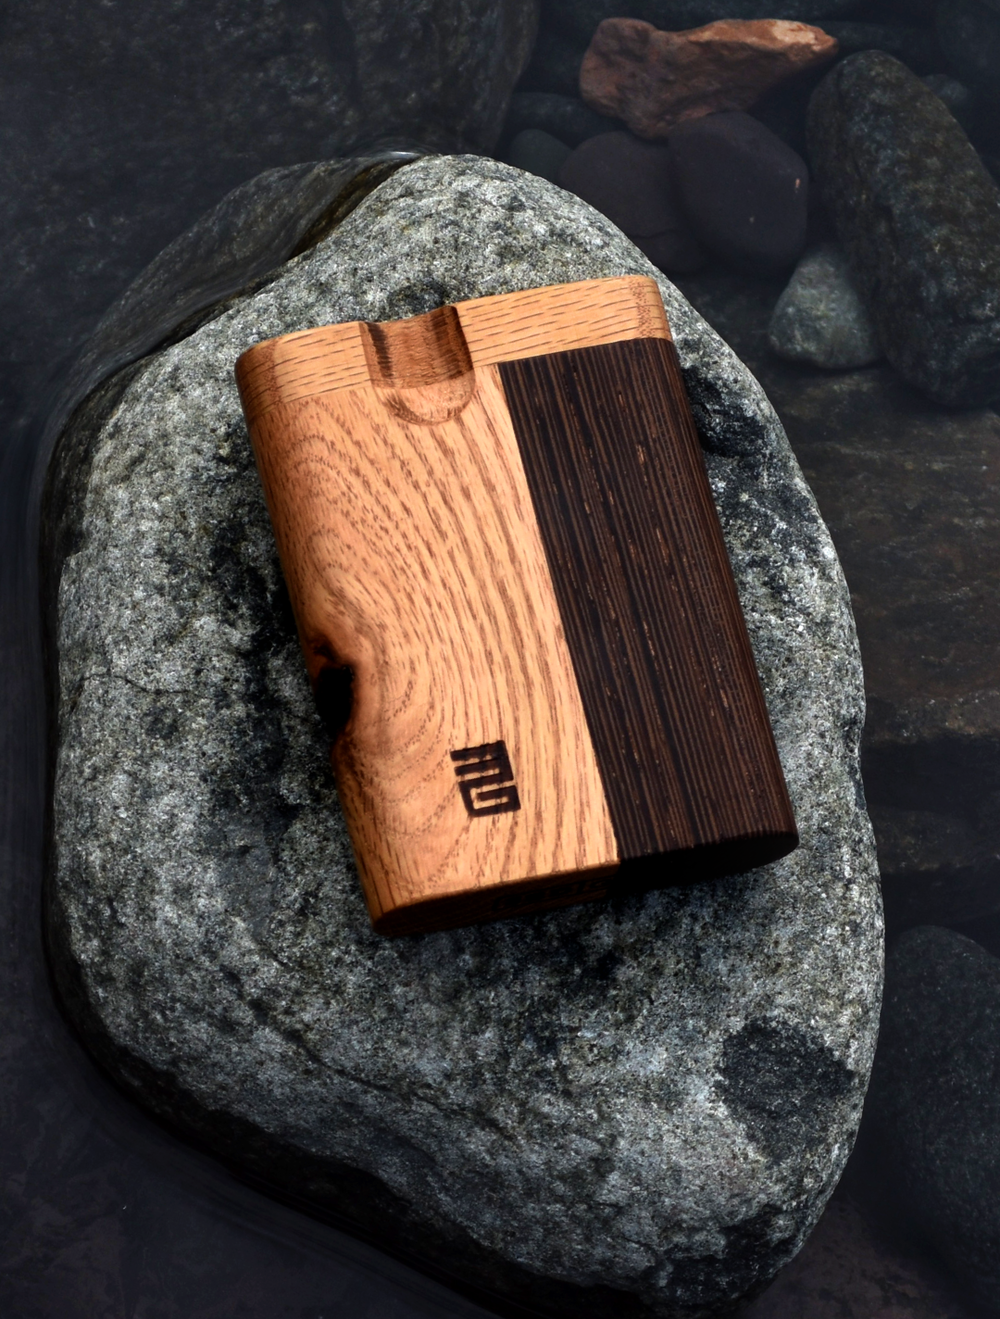 XL Dugouts—Chillouts - With an oversized pocket and a chillum, you can rest easy knowing you'll have plenty for the journey—with some to spare.